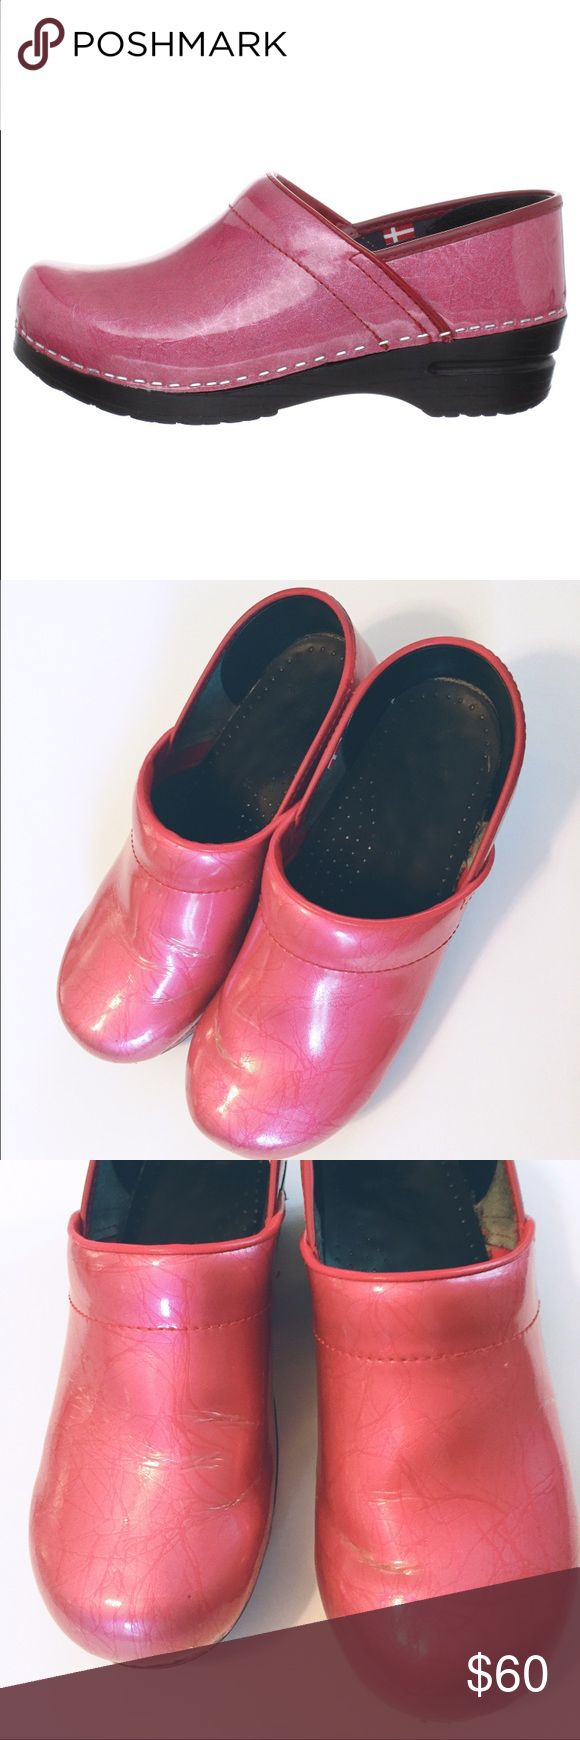 Sanita Professional Pearl Clogs Shiny hot pink Danish style clogs like Dansko. Purchased 4 months ago. Some creasing at bends of toe from wear but otherwise in great condition,lots of life left! Padded step and orthopedic rocker bottom Isolde make these the perfect shoe for people on their feet all day. Size 39 (8.5-9). NO TRADES Sanita Shoes Mules & Clogs